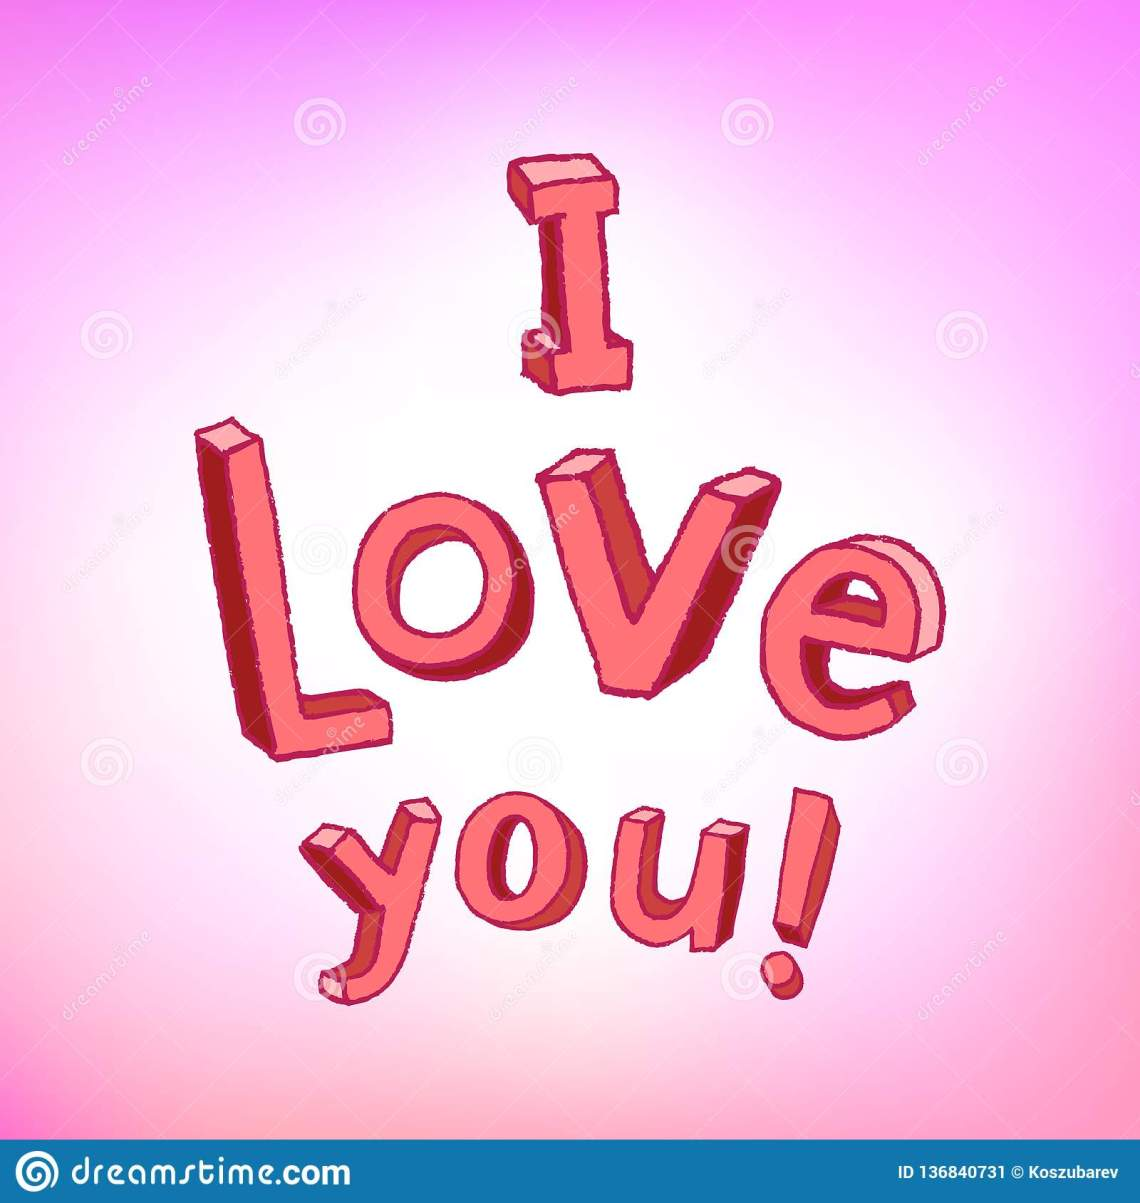 Download I Love You With Children Letters Stock Vector ...